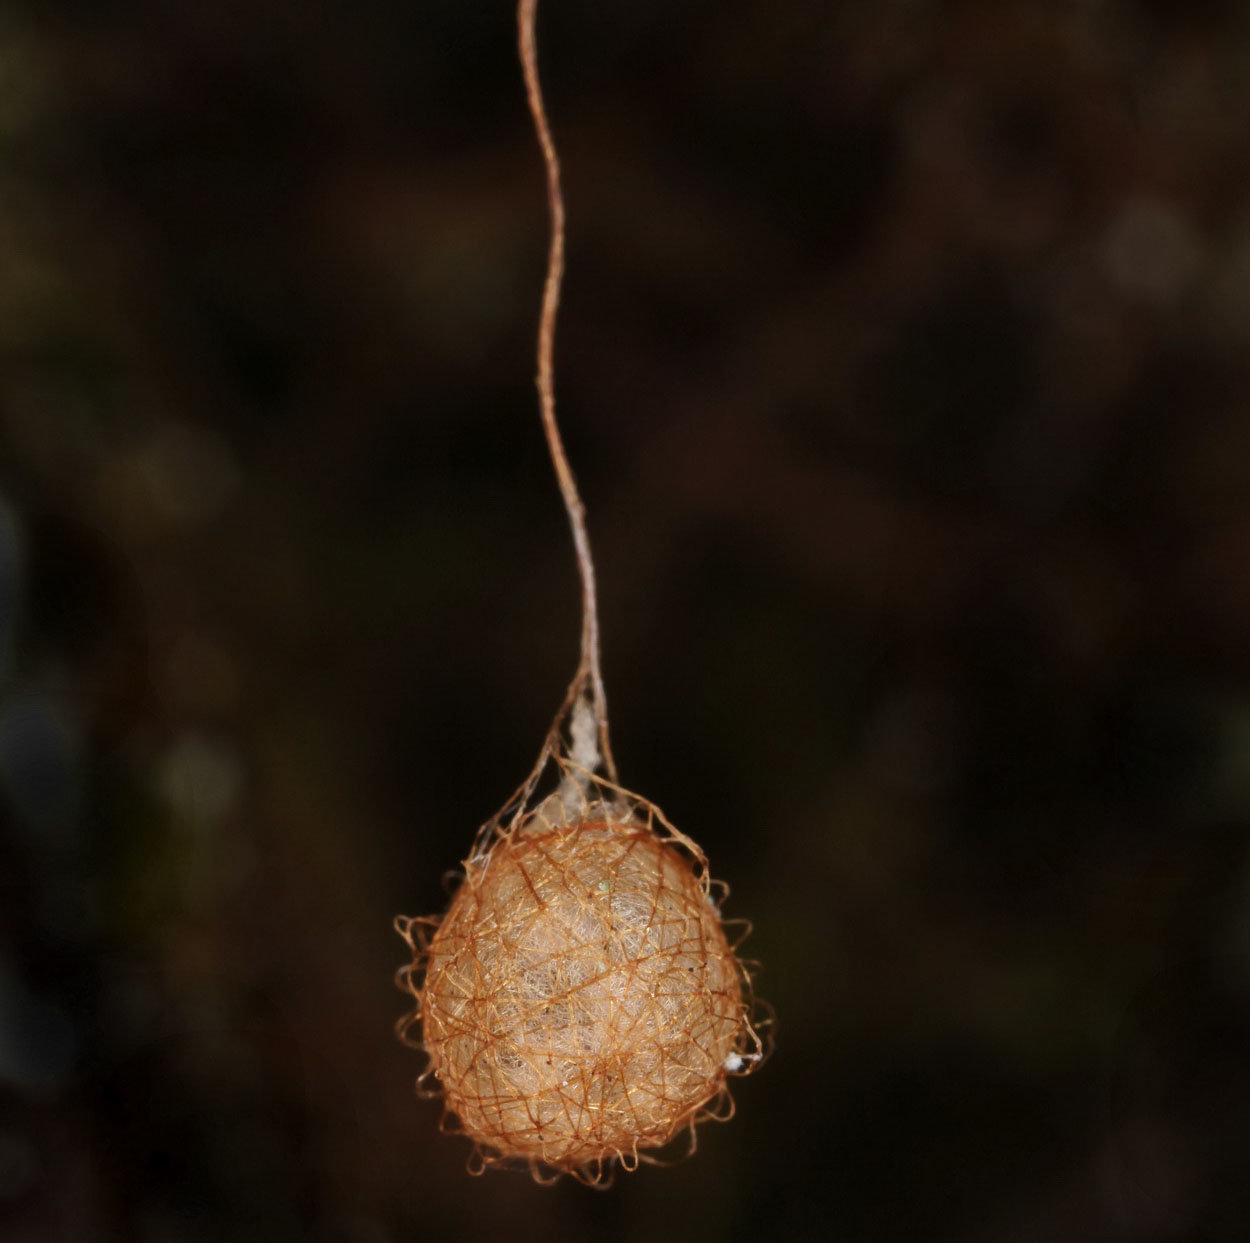 Characteristic eggsac of pirate spiders (Photo: C. Komposch)